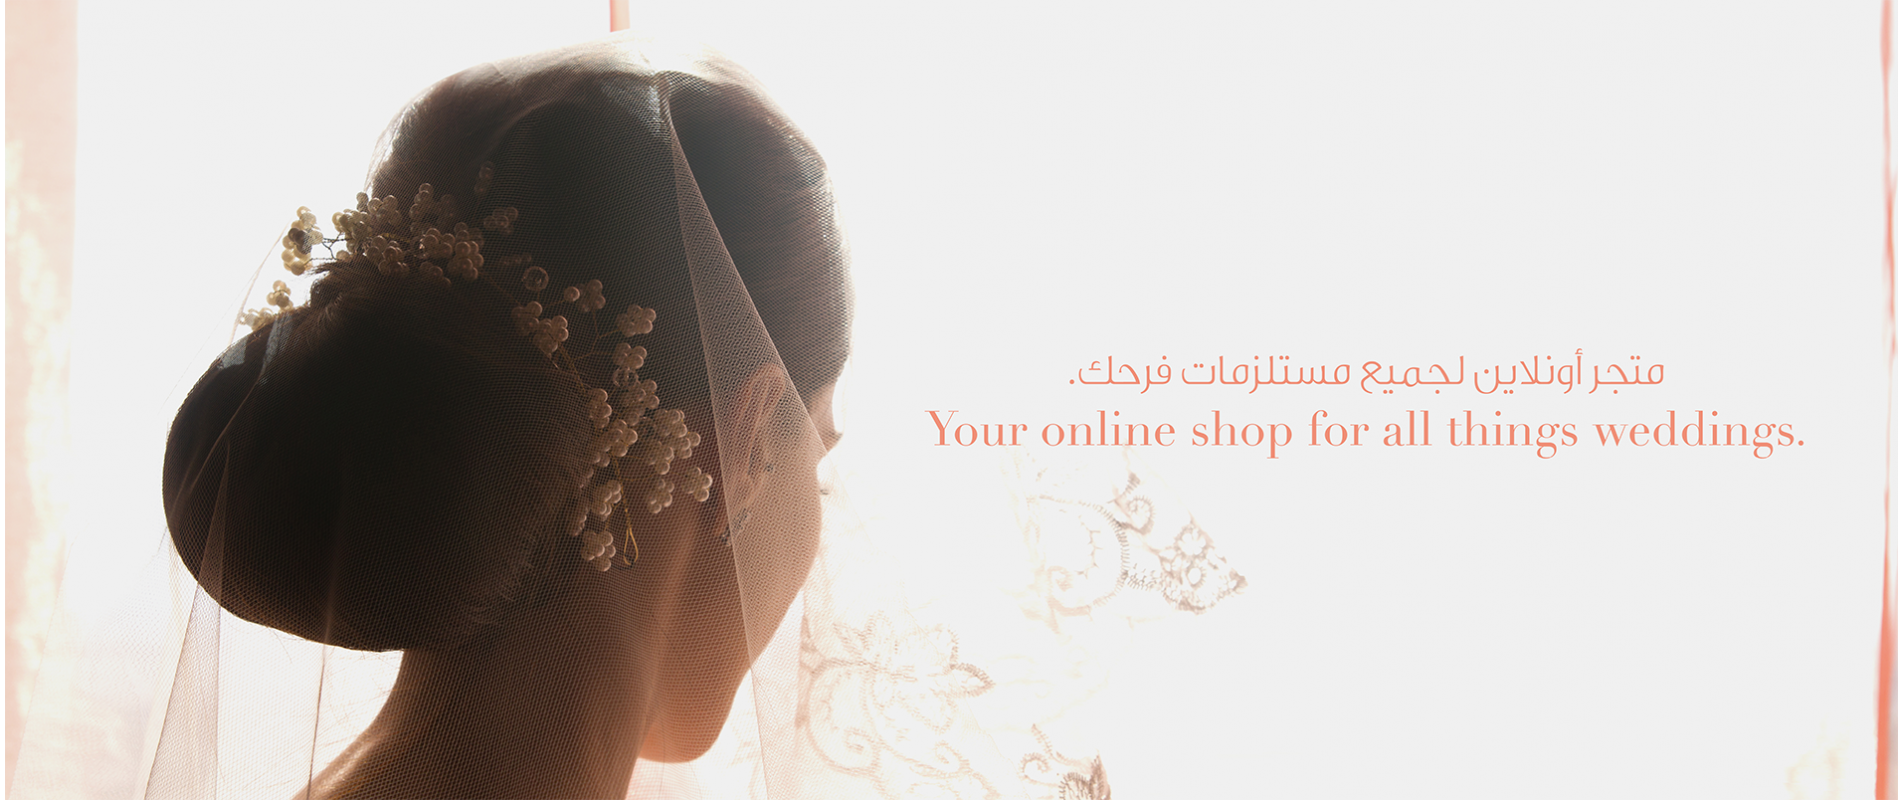 farahii online shop banner wedding and bridal needs